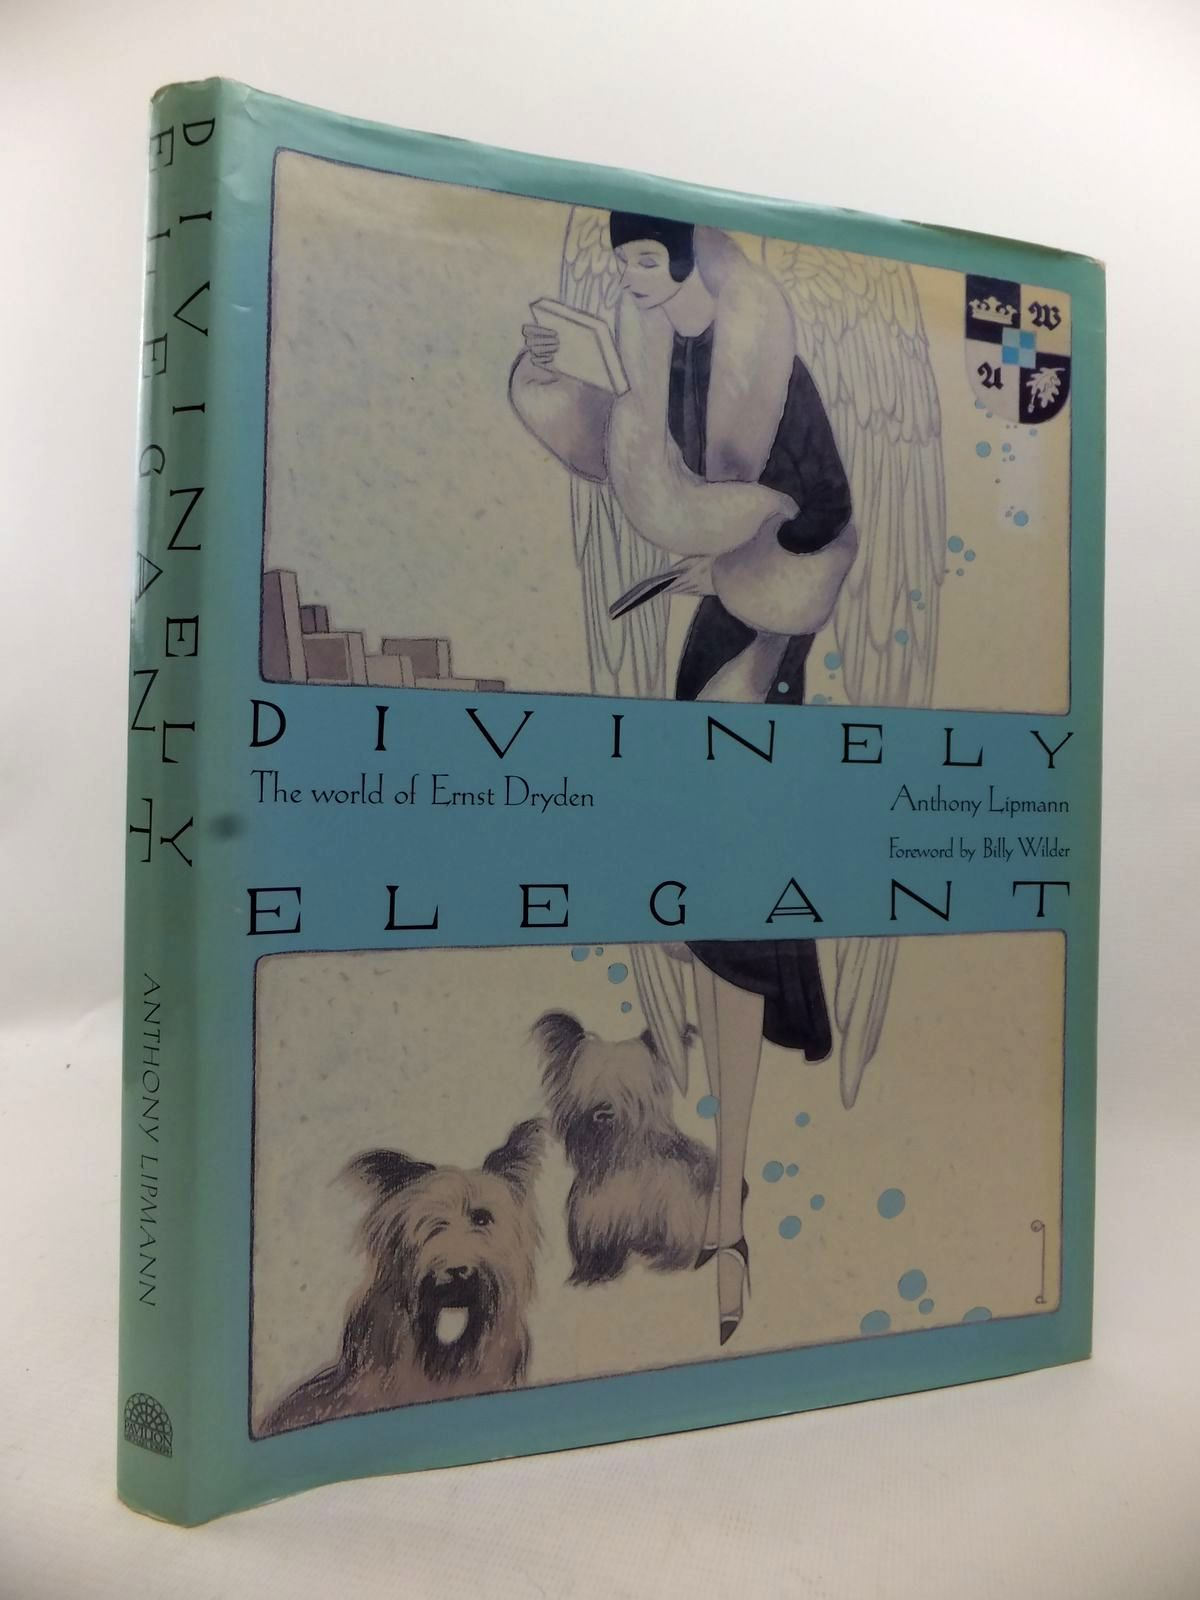 Photo of DIVINELY ELEGANT THE WORLD OF ERNST DRYDEN written by Lipmann, Anthony illustrated by Dryden, Ernst published by Pavilion Books (STOCK CODE: 1813353)  for sale by Stella & Rose's Books